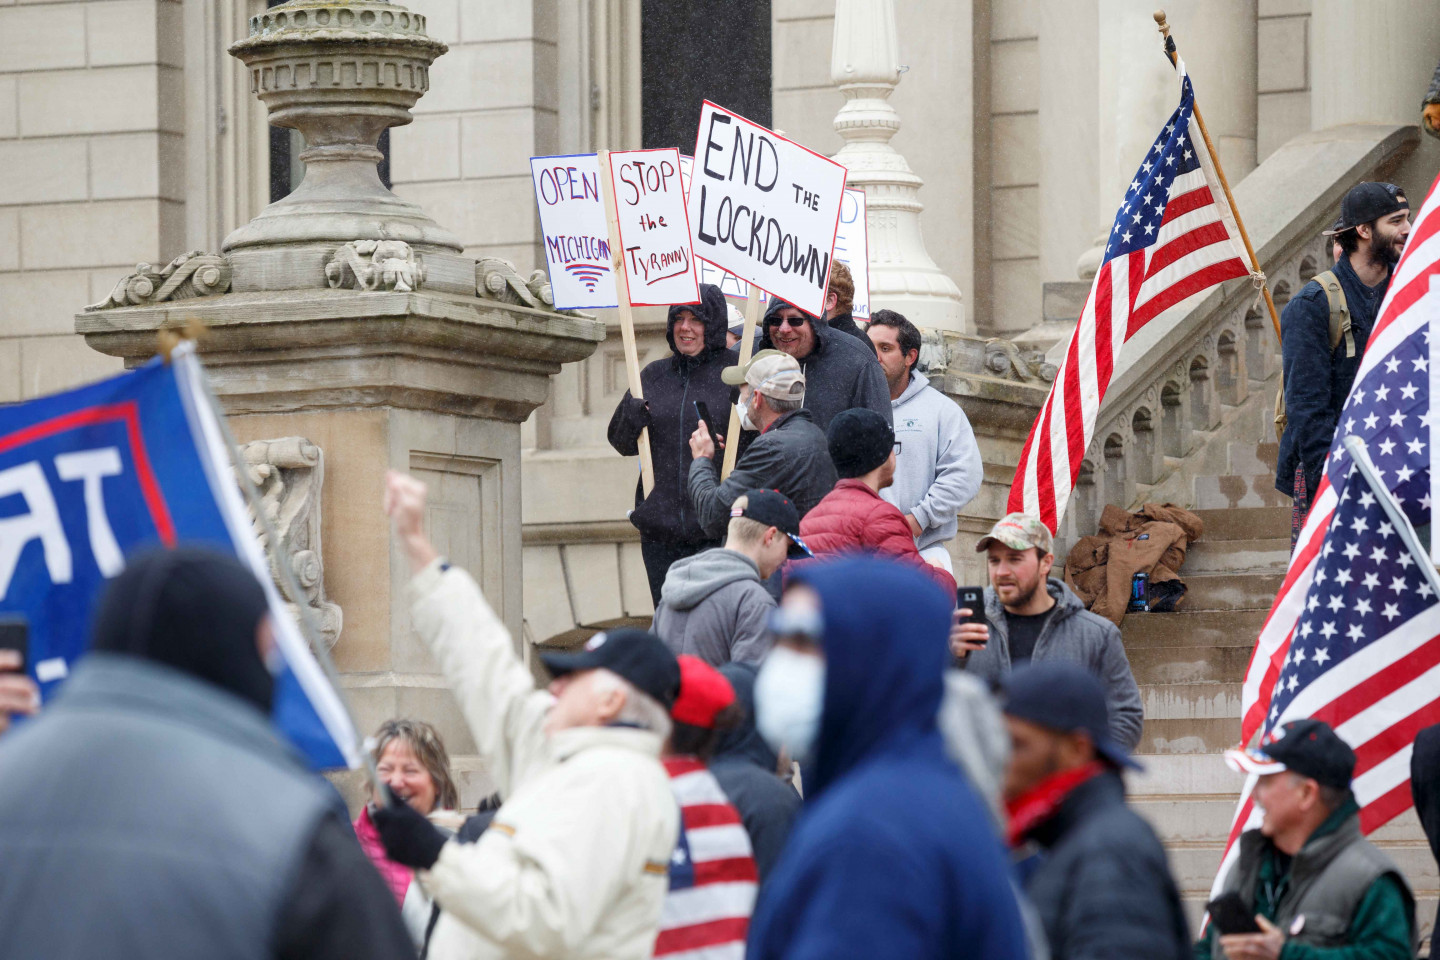 People demonstrate with flags and signs on the steps of the Michigan Capitol building.